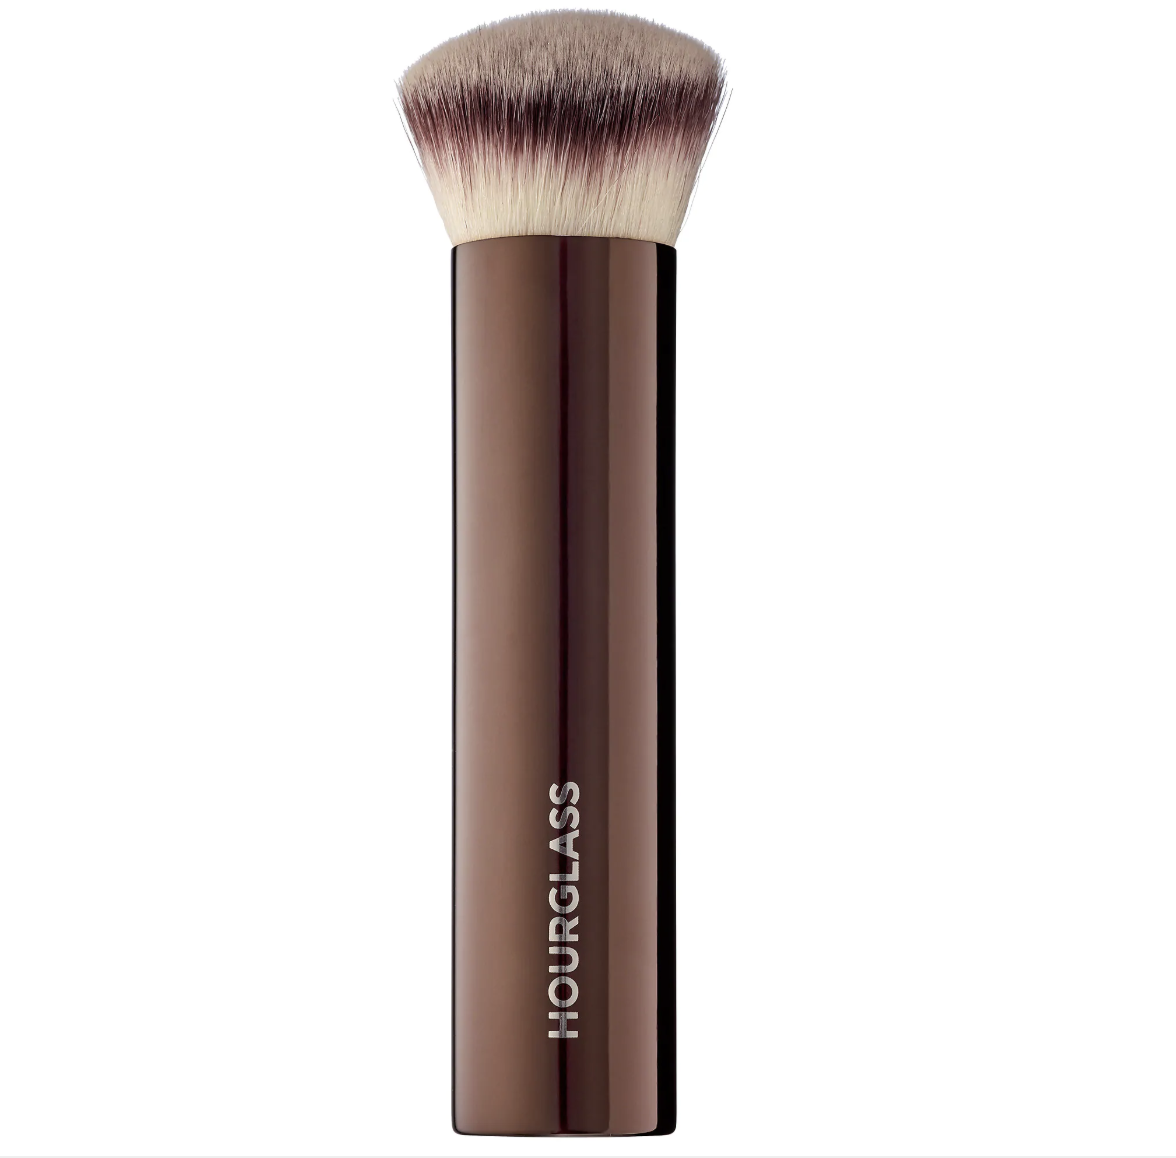 Hourglass Vanish™ Foundation Brush